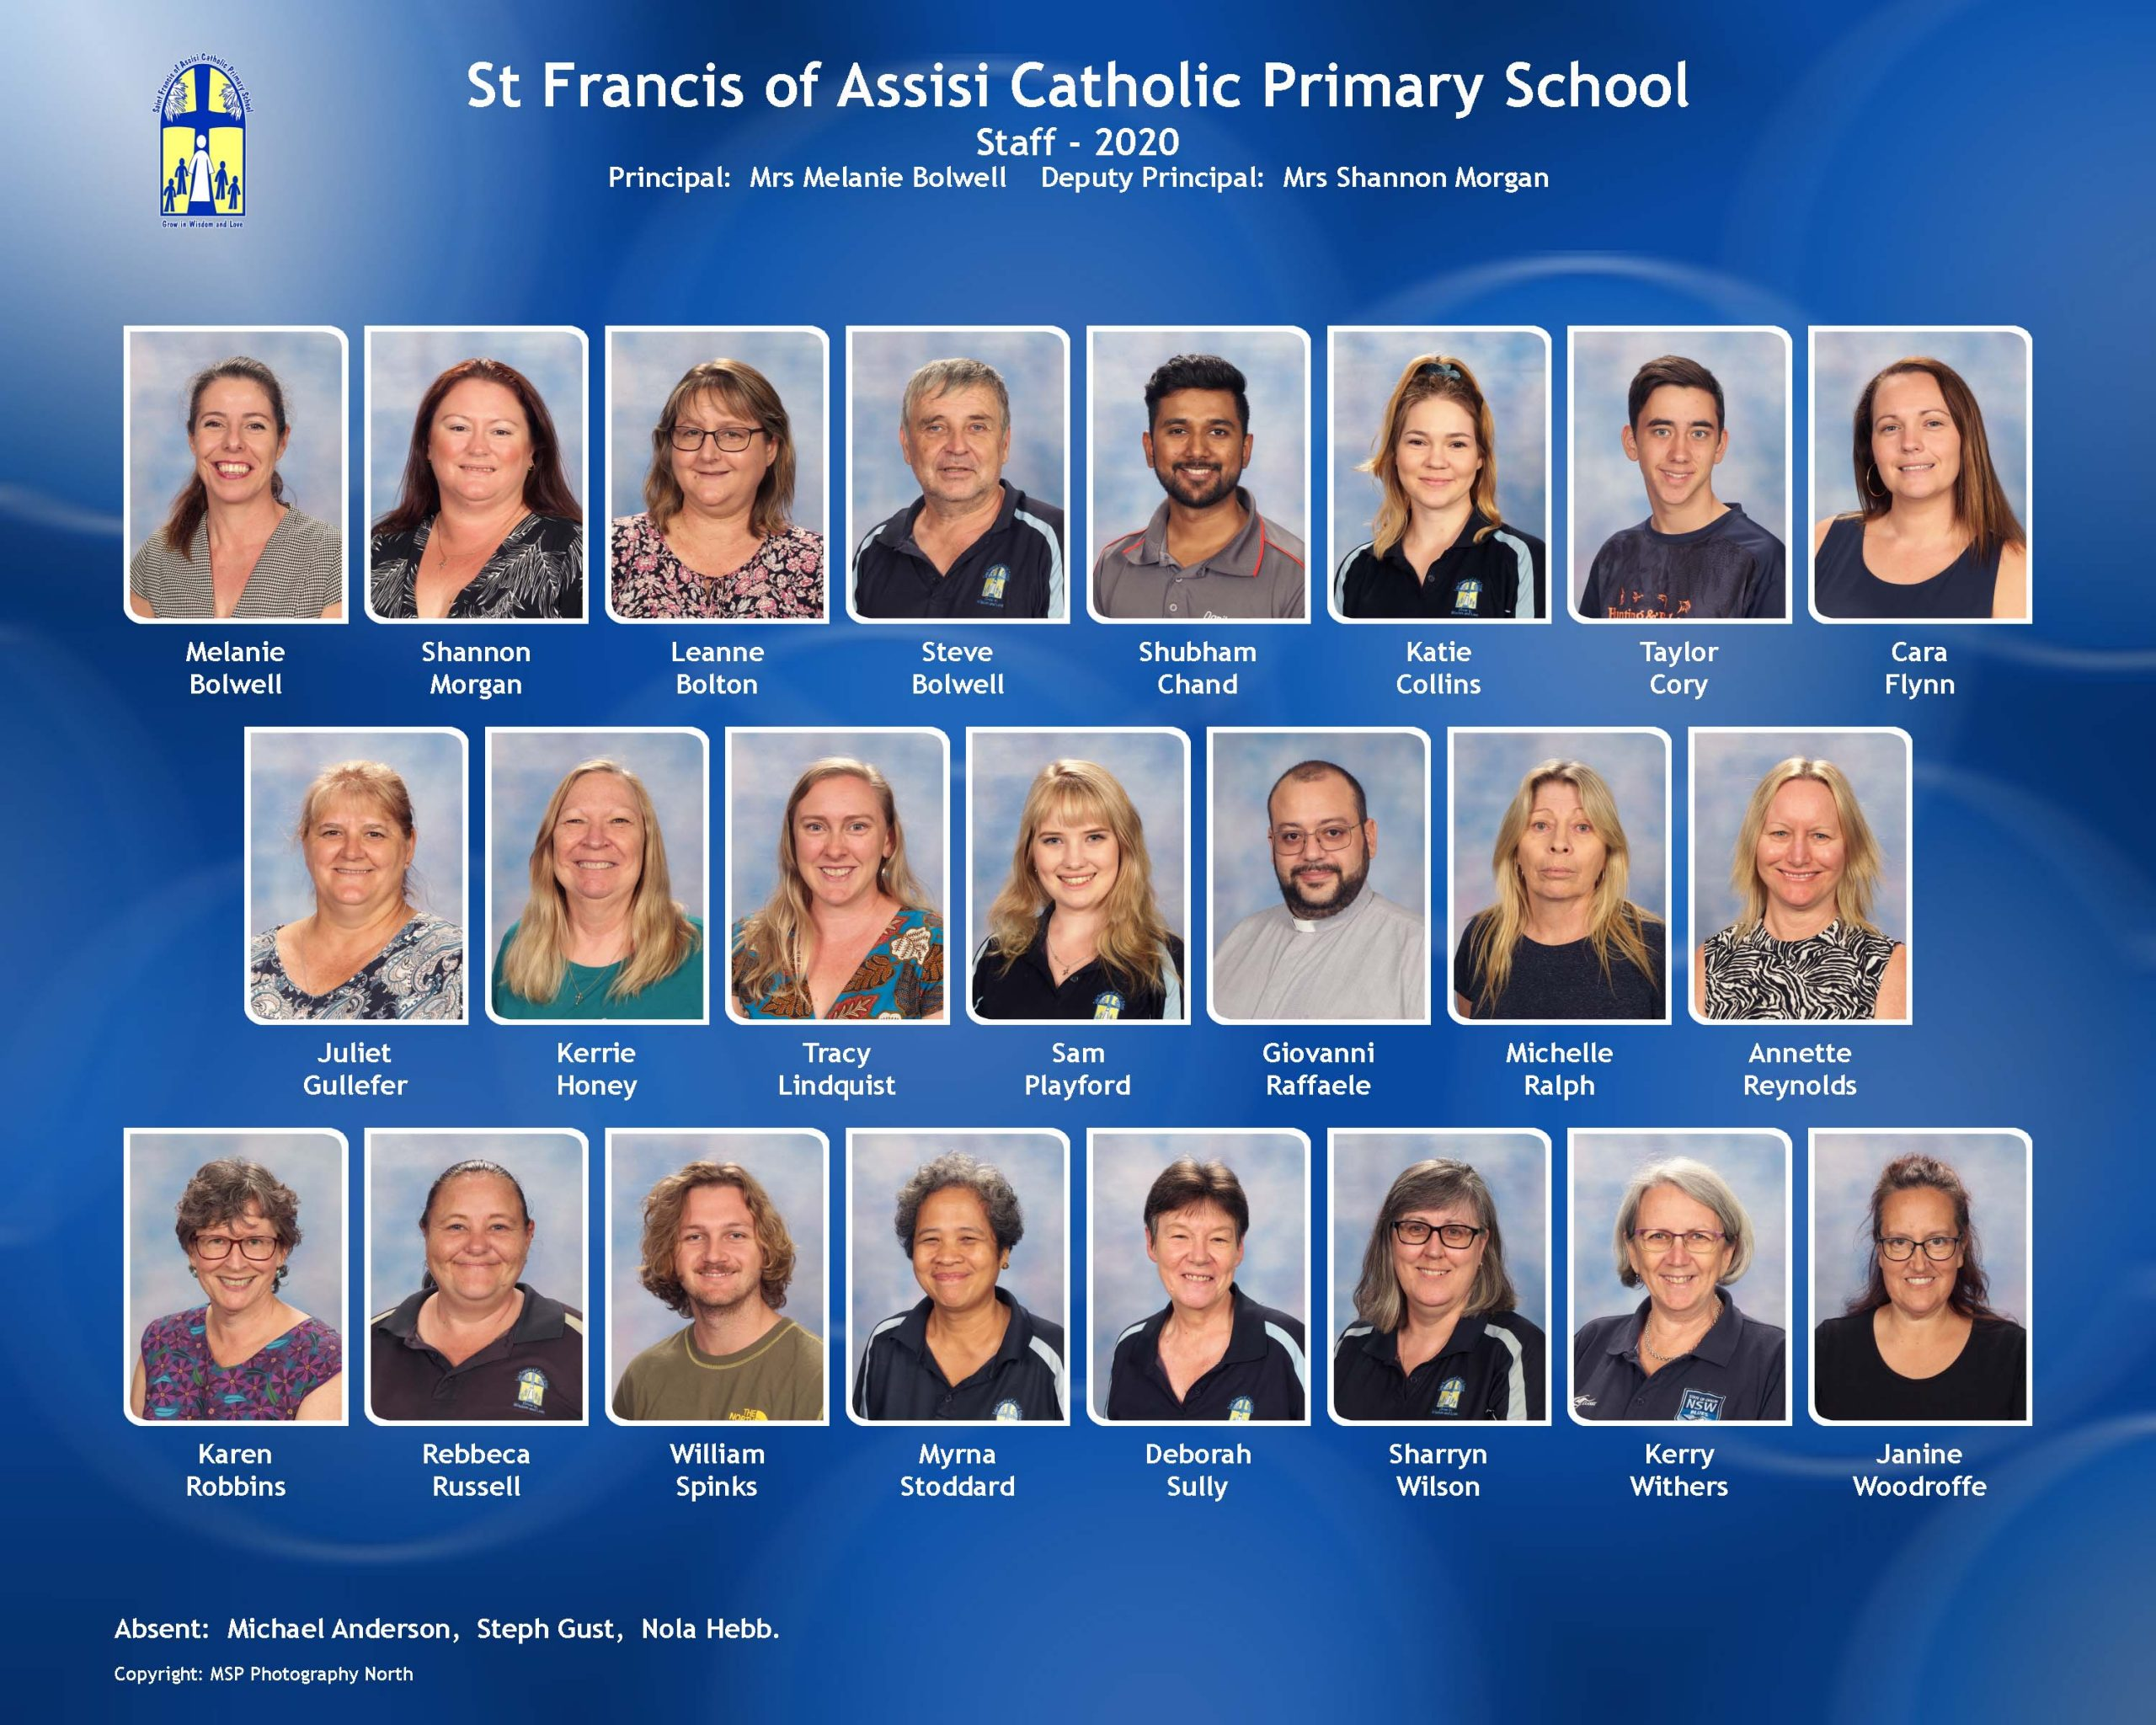 St Francis of Assisi Catholic Primary School Staff